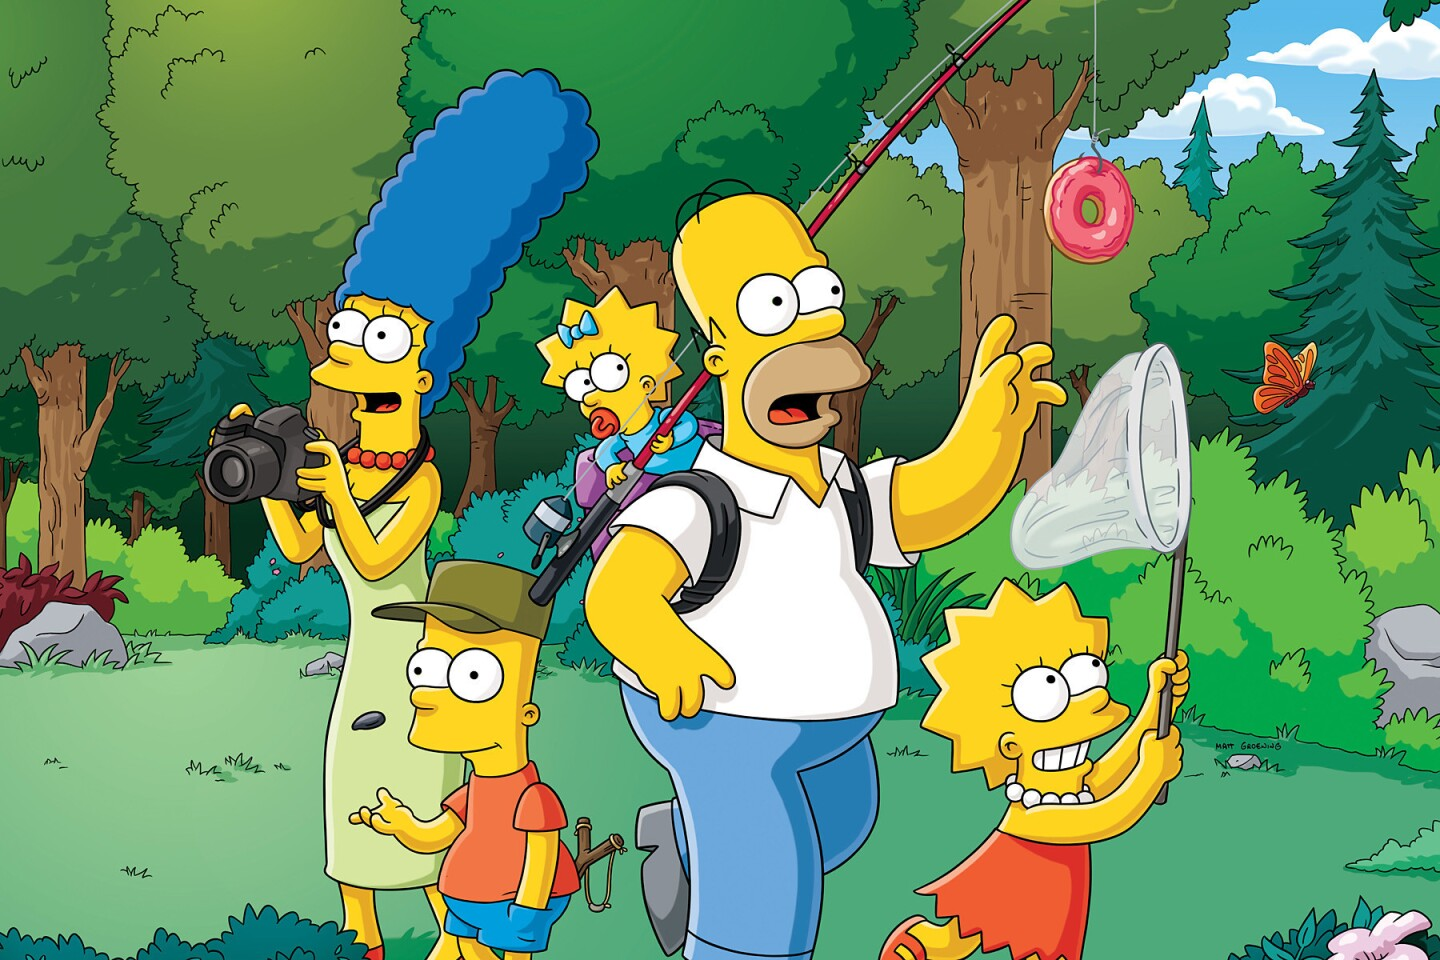 'The Simpsons': Long-running success